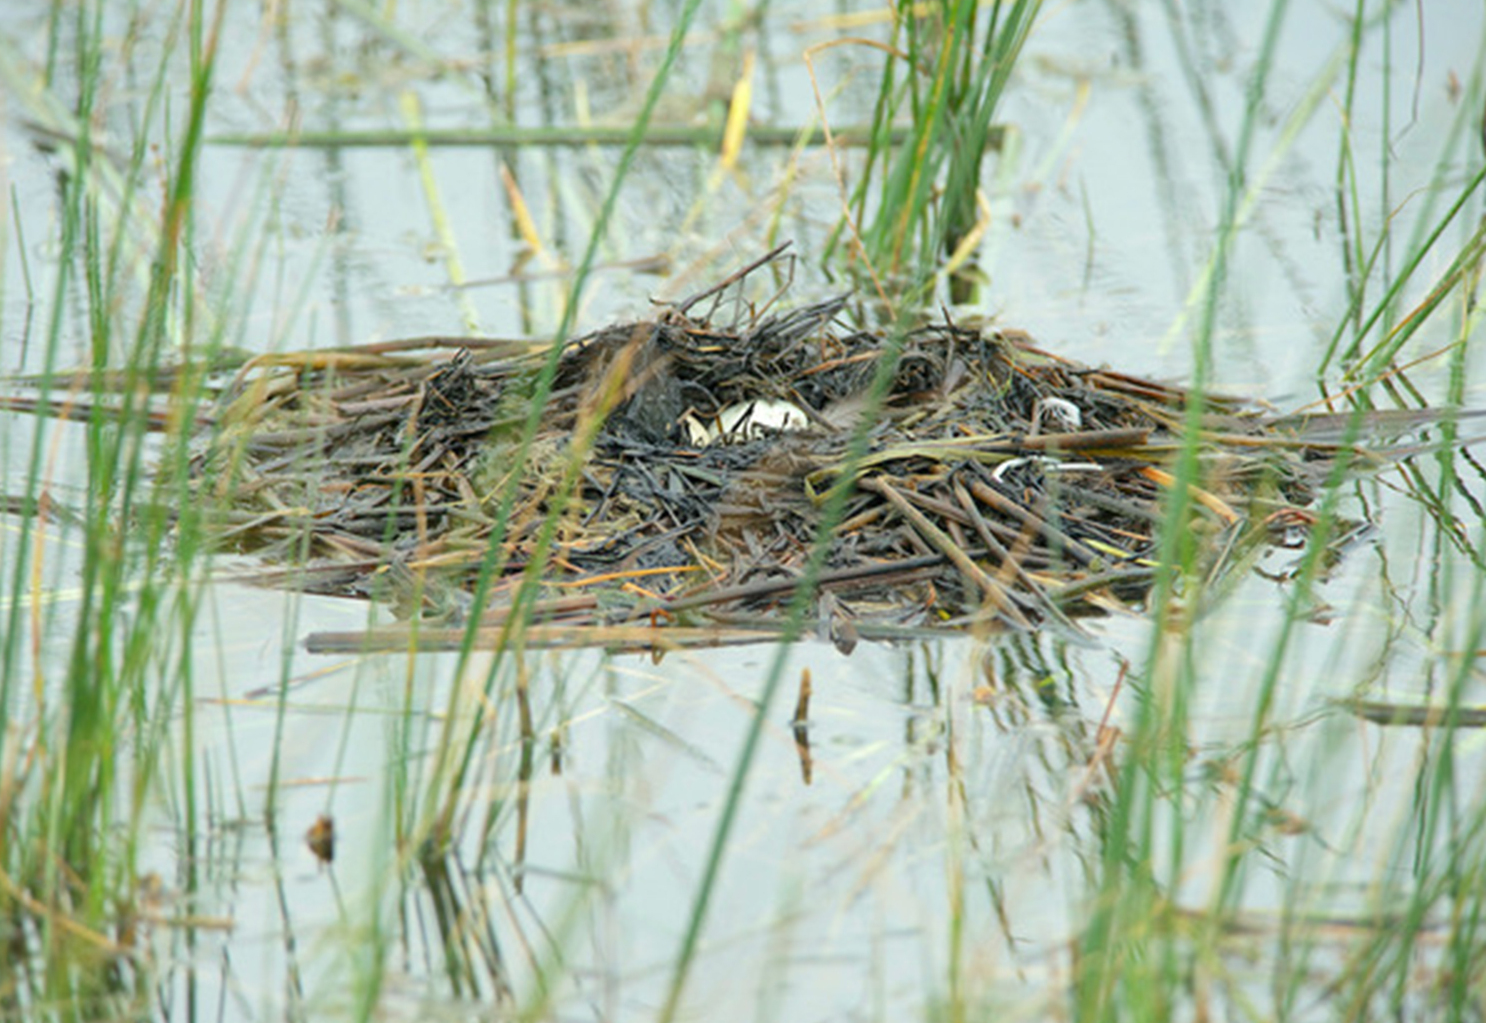 A grebe — horned or eared — used reeds to build this floating nest. The white eggs are visible when the bird leaves the nest, so it uses reeds to hide the eggs.